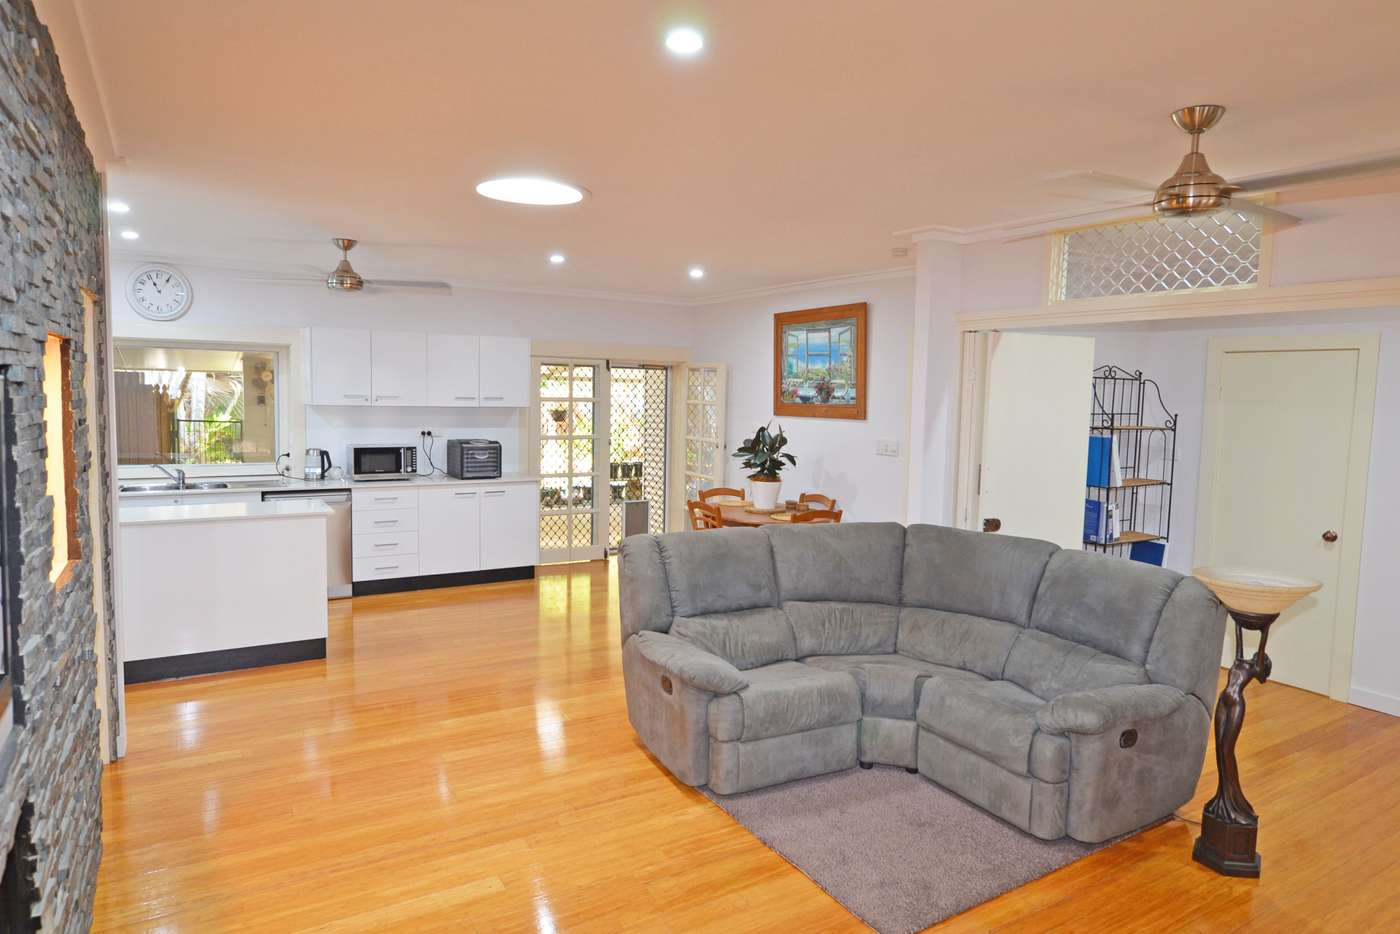 Seventh view of Homely house listing, 10 Robins Street, Mareeba QLD 4880